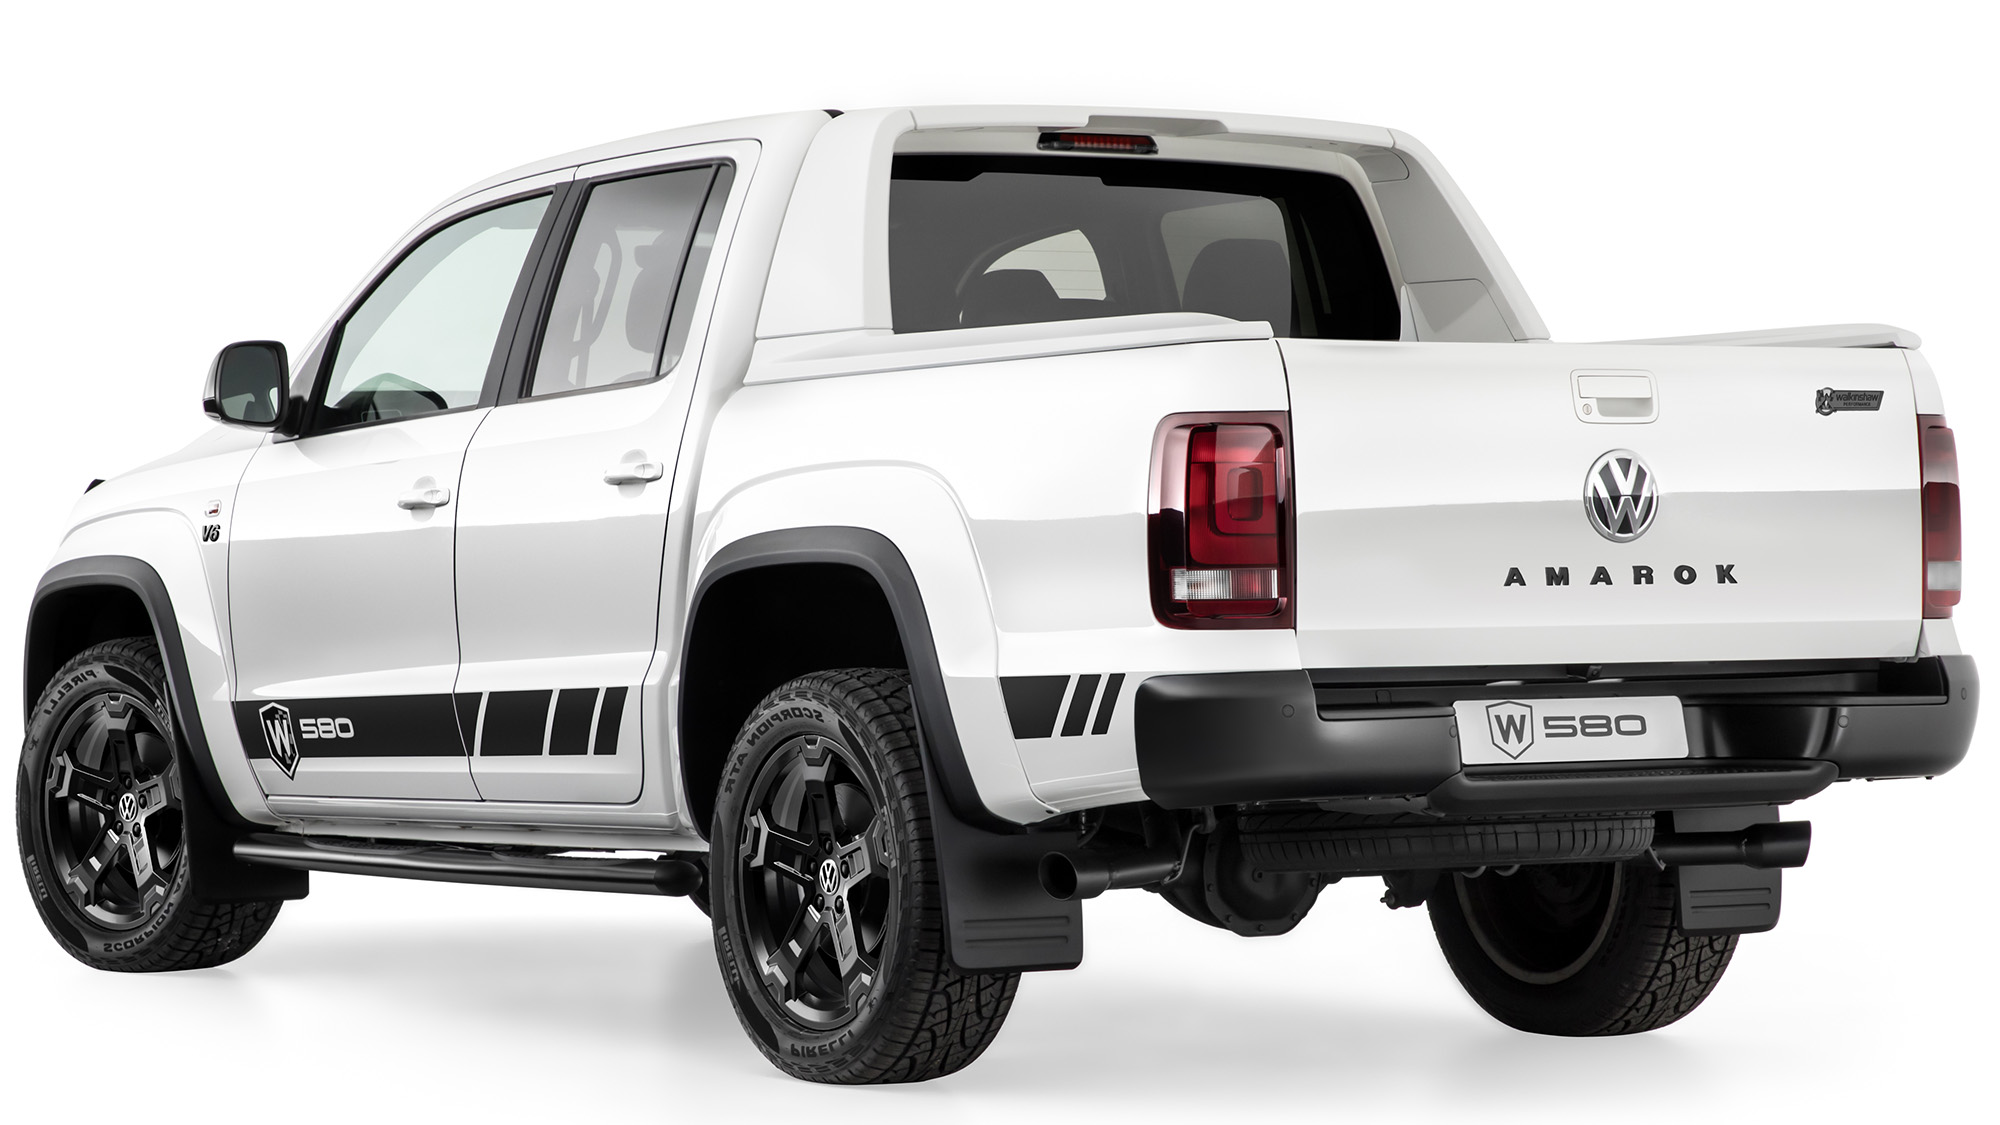 Press images and footage provided depicts an Amarok W580 pre-production prototype.